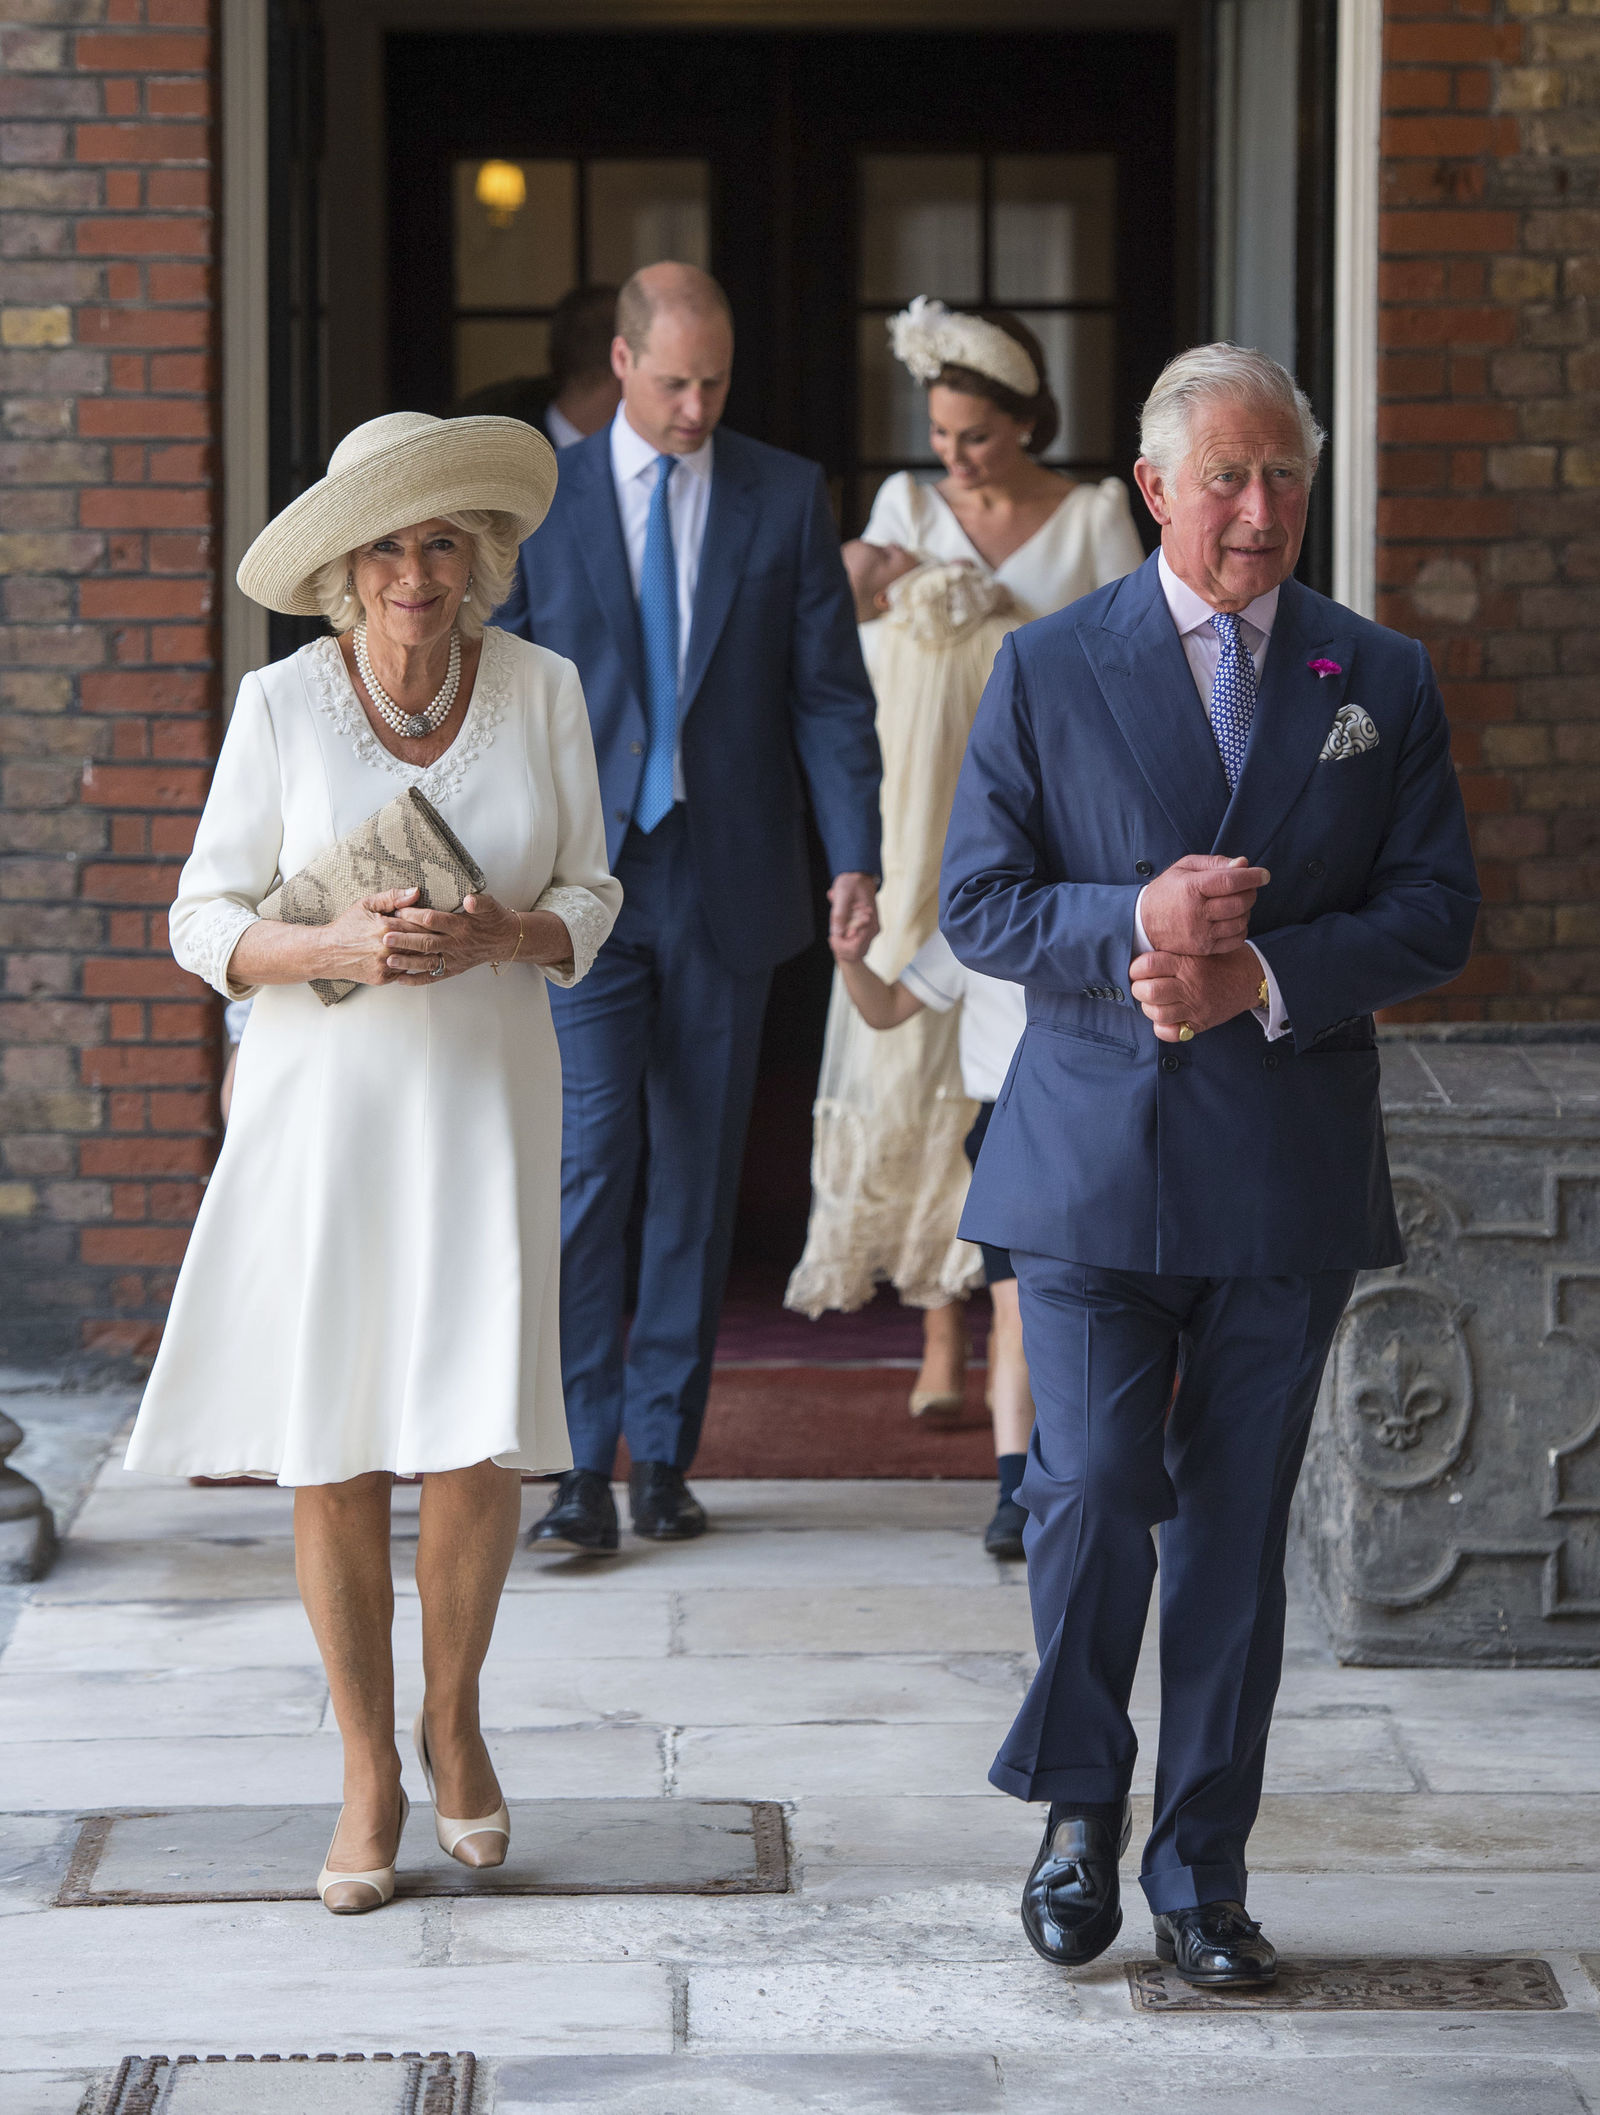 Britain's Prince Charles and Camilla Duchess of Cornwall arrive for the christening service of Prince Louis at the Chapel Royal, St James's Palace, London, Monday, July 9, 2018. (Dominic Lipinski/Pool Photo via AP)